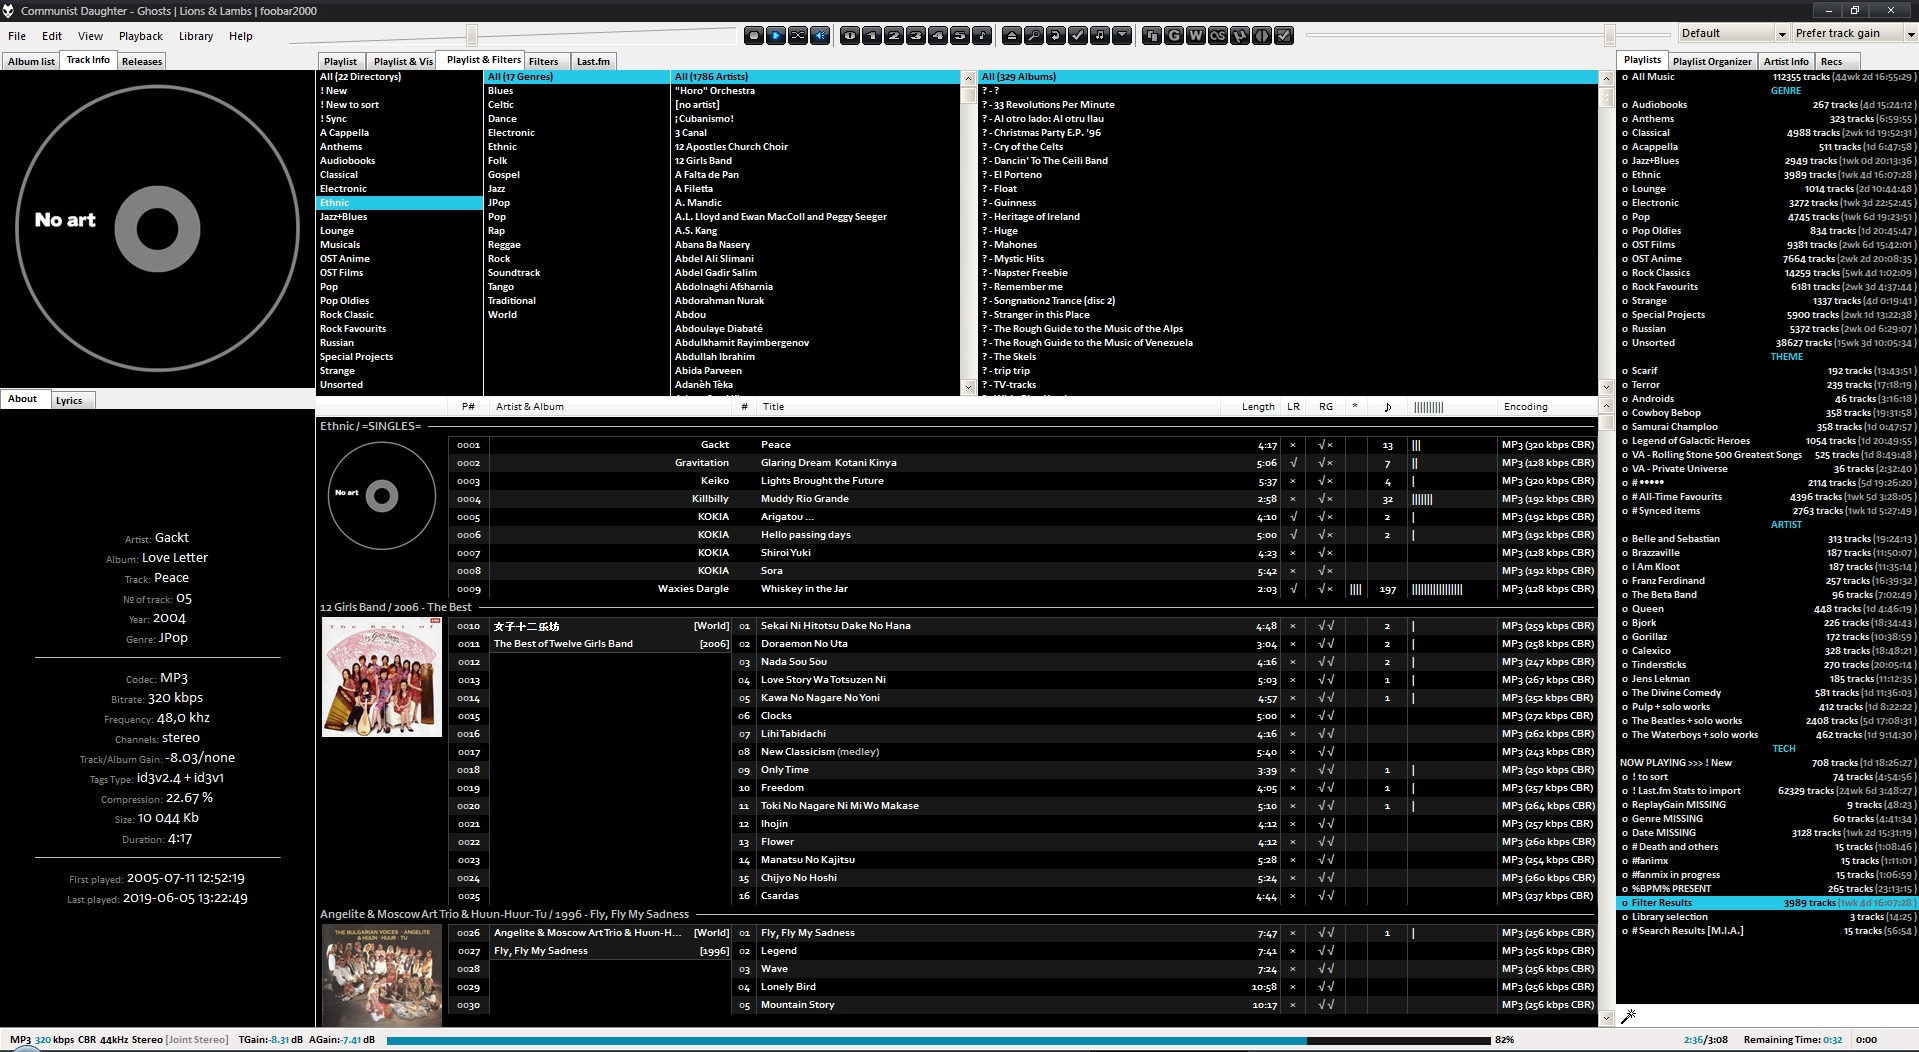 foobar2000 in 2021 - Filtered playlist and No Art picture